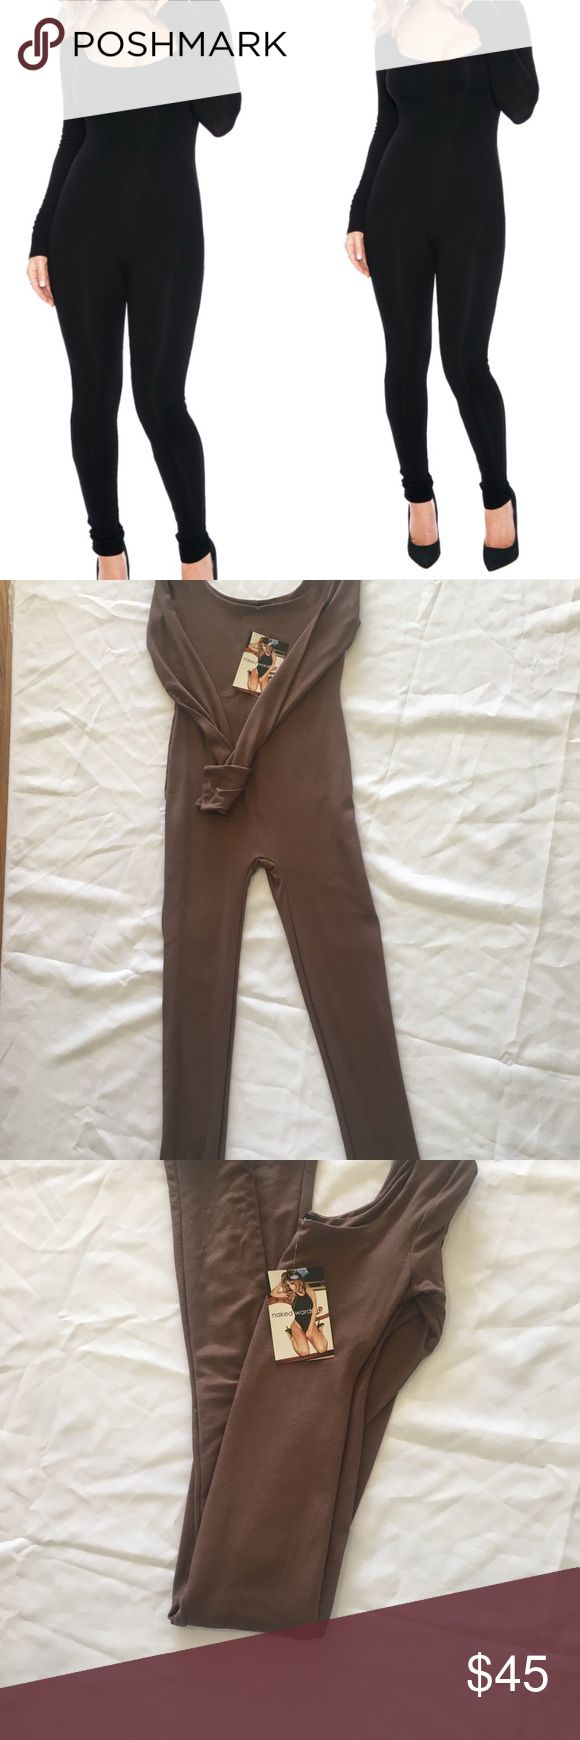 Naked Wardrobe Tan -Brown Jumpsuit Naked Wardrobe Brown Jumpsuit  Brand New With tags Size medium  5% spandex very stretchy  Color brown Naked Wardrobe Pants Jumpsuits & Rompers